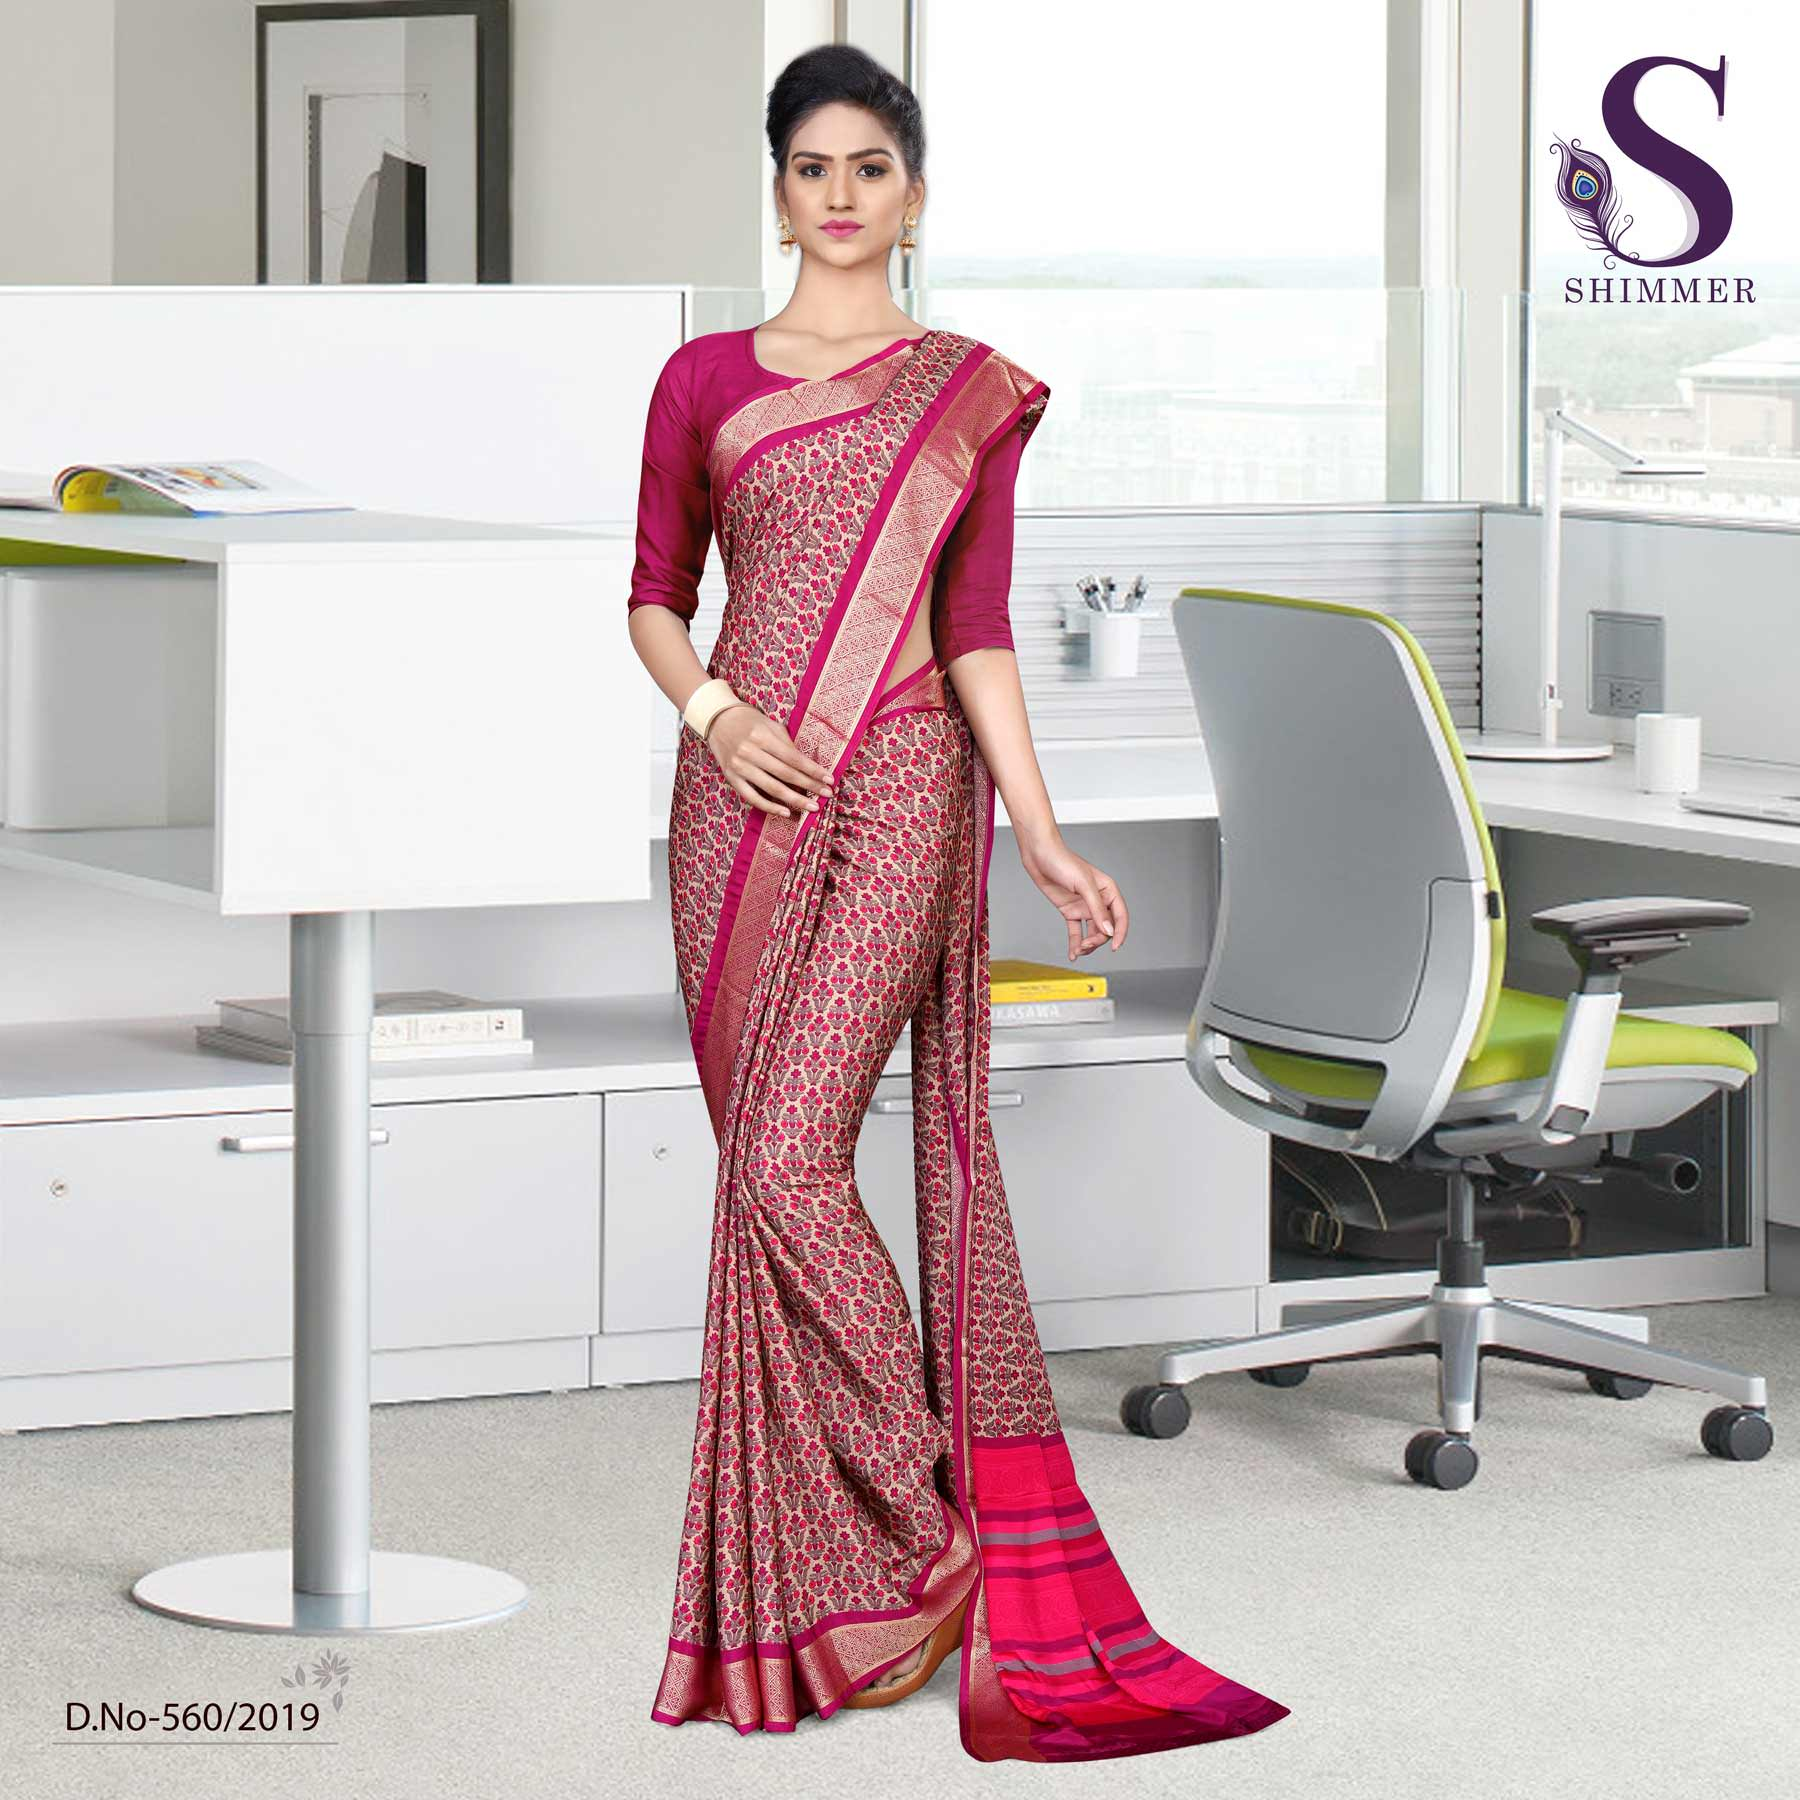 an image of Voilet purple silk crepe jaquard border simple uniform sarees with product logo and sku number